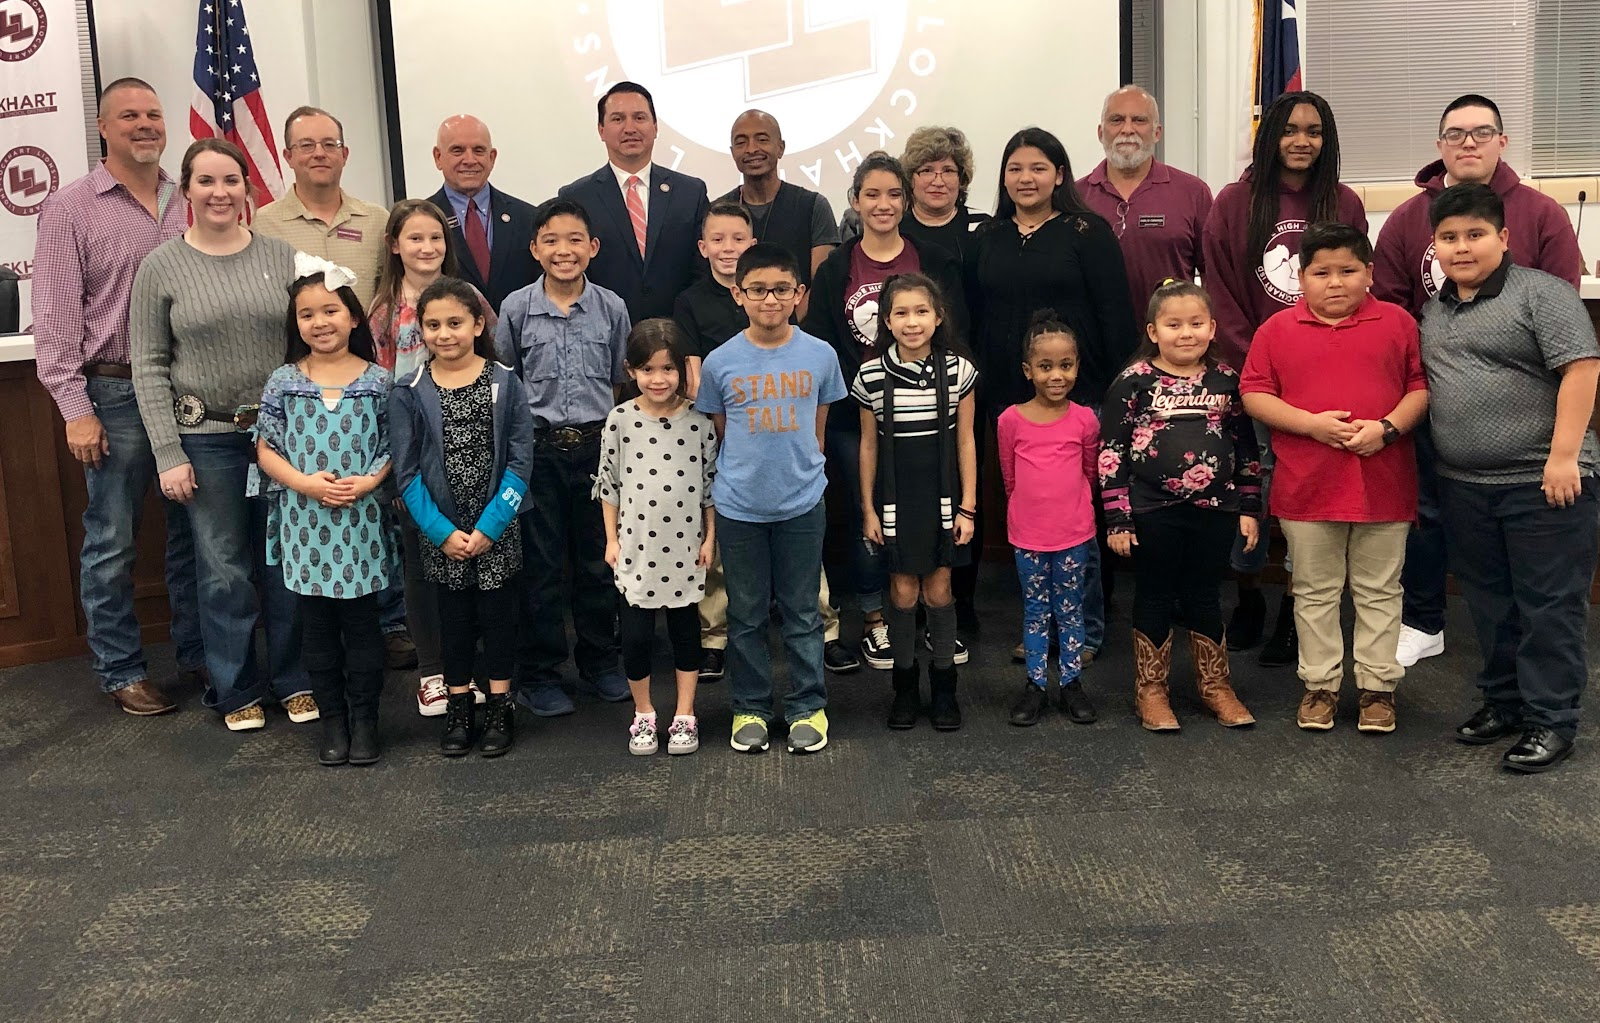 LISD Board honored by LISD students